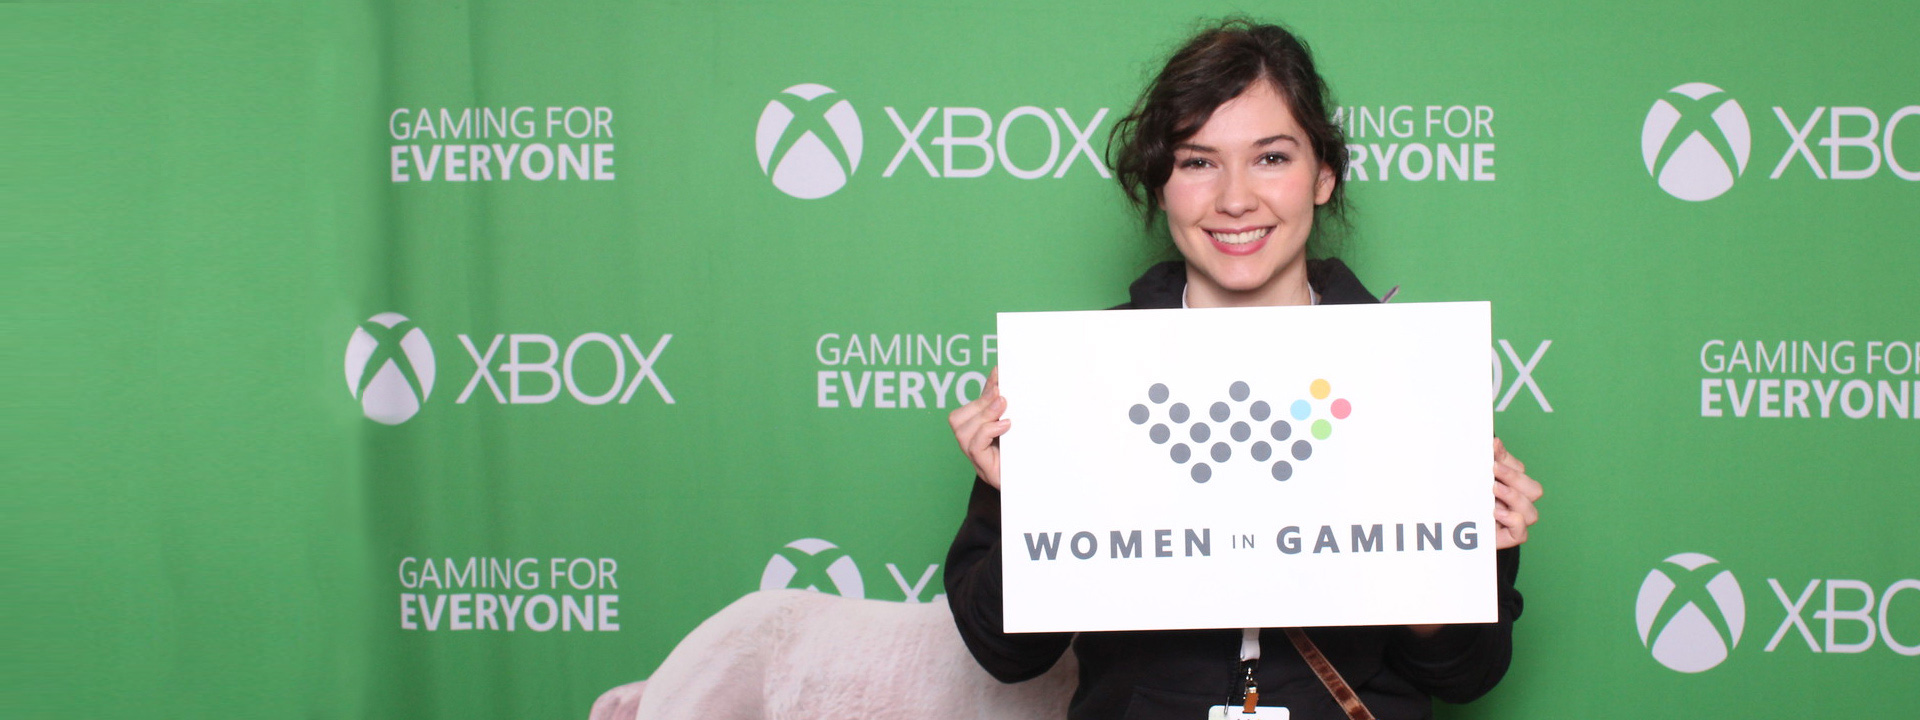 Gaming graphics and Women in Gaming logo spelling out the text